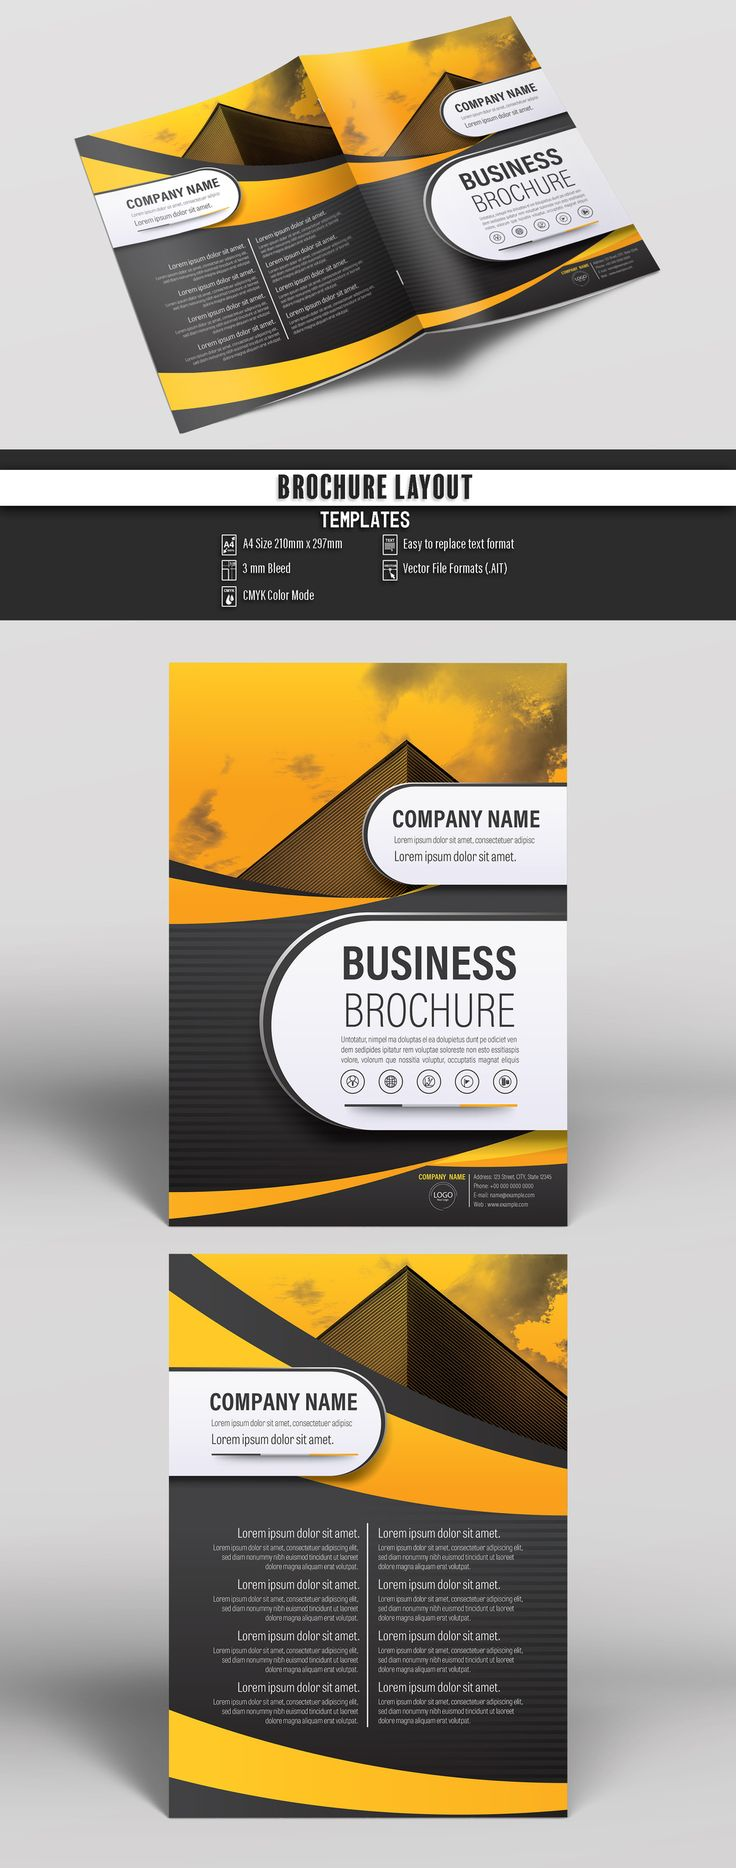 Brochure Cover Layout with Gray and Orange Accents 26. Buy this stock template and explore similar templates at Adobe Stock  #Brochure #Business #Proposal #Booklet #Flyer #Template #Design #Layout #Cover #Book #Booklet #A4 #Annual #Report| Brochure template | Brochure design template | Flyers | Template | Brochures | Flyer Background | Background design | Business Proposal | Proposal Design | Booklet | Professional | Professional - Proposal - Brochure - Template